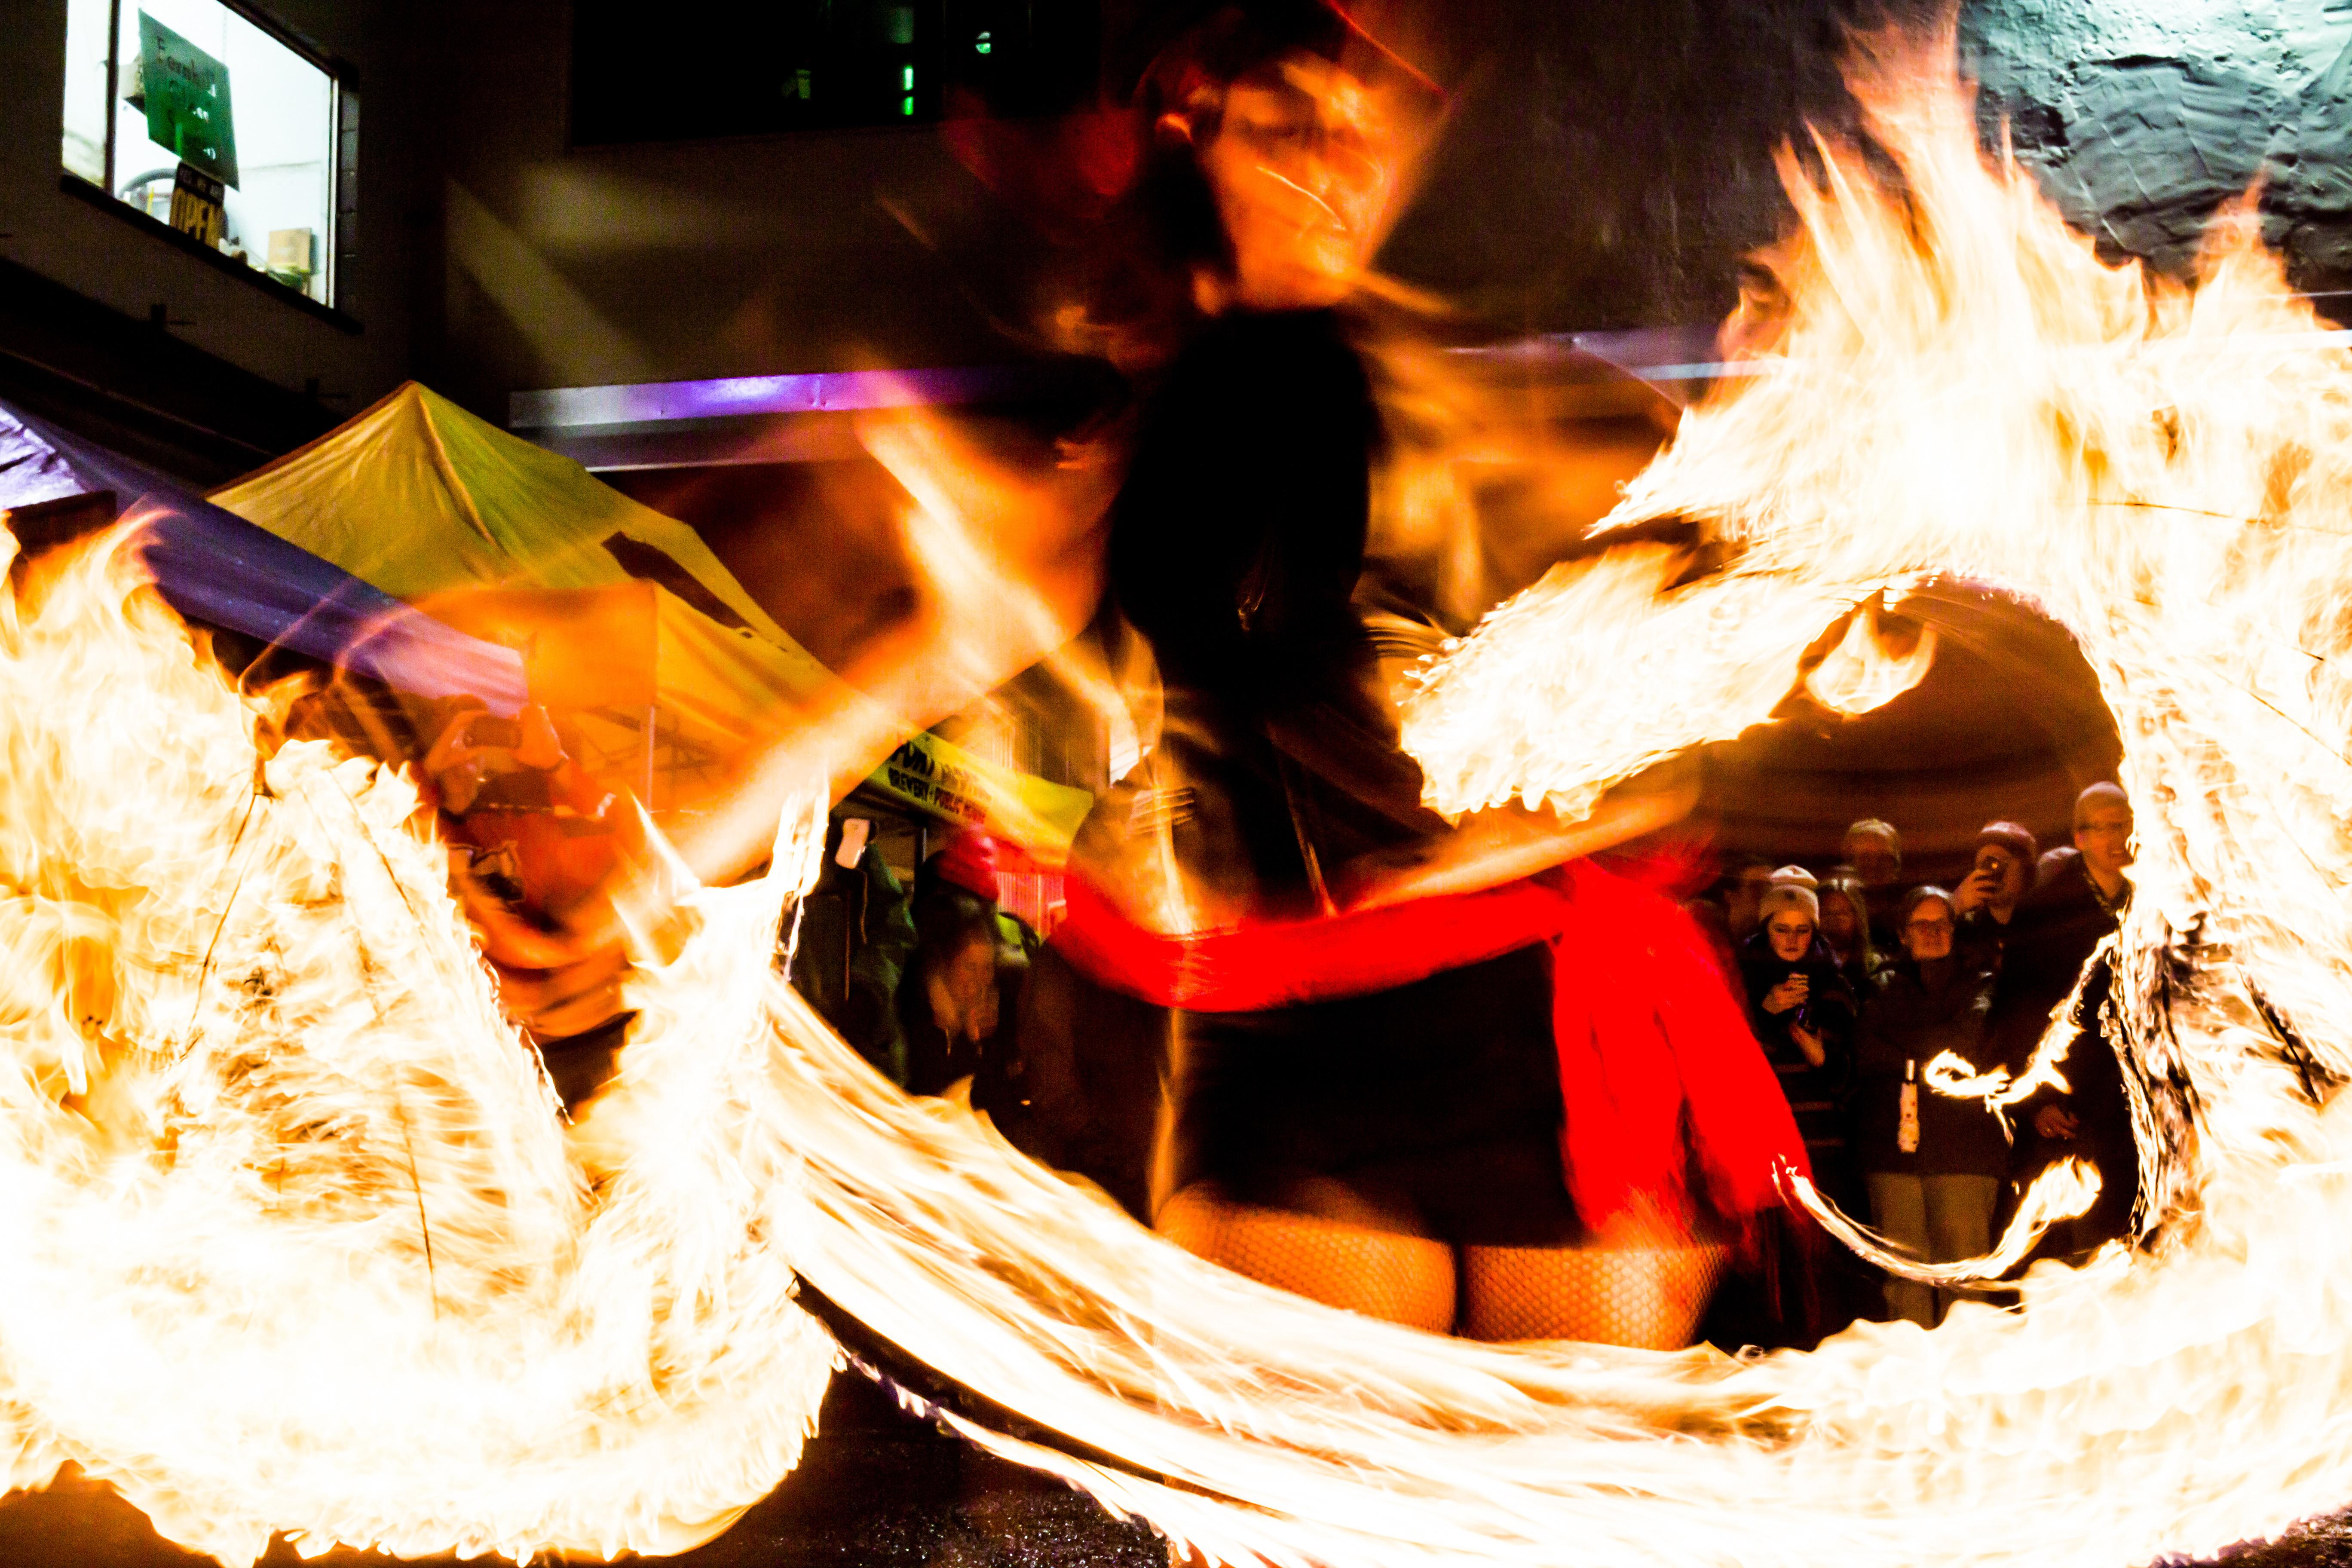 Festival of Dark Arts 2014 Fire Dancers (image courtesy of Fort George Brewery)